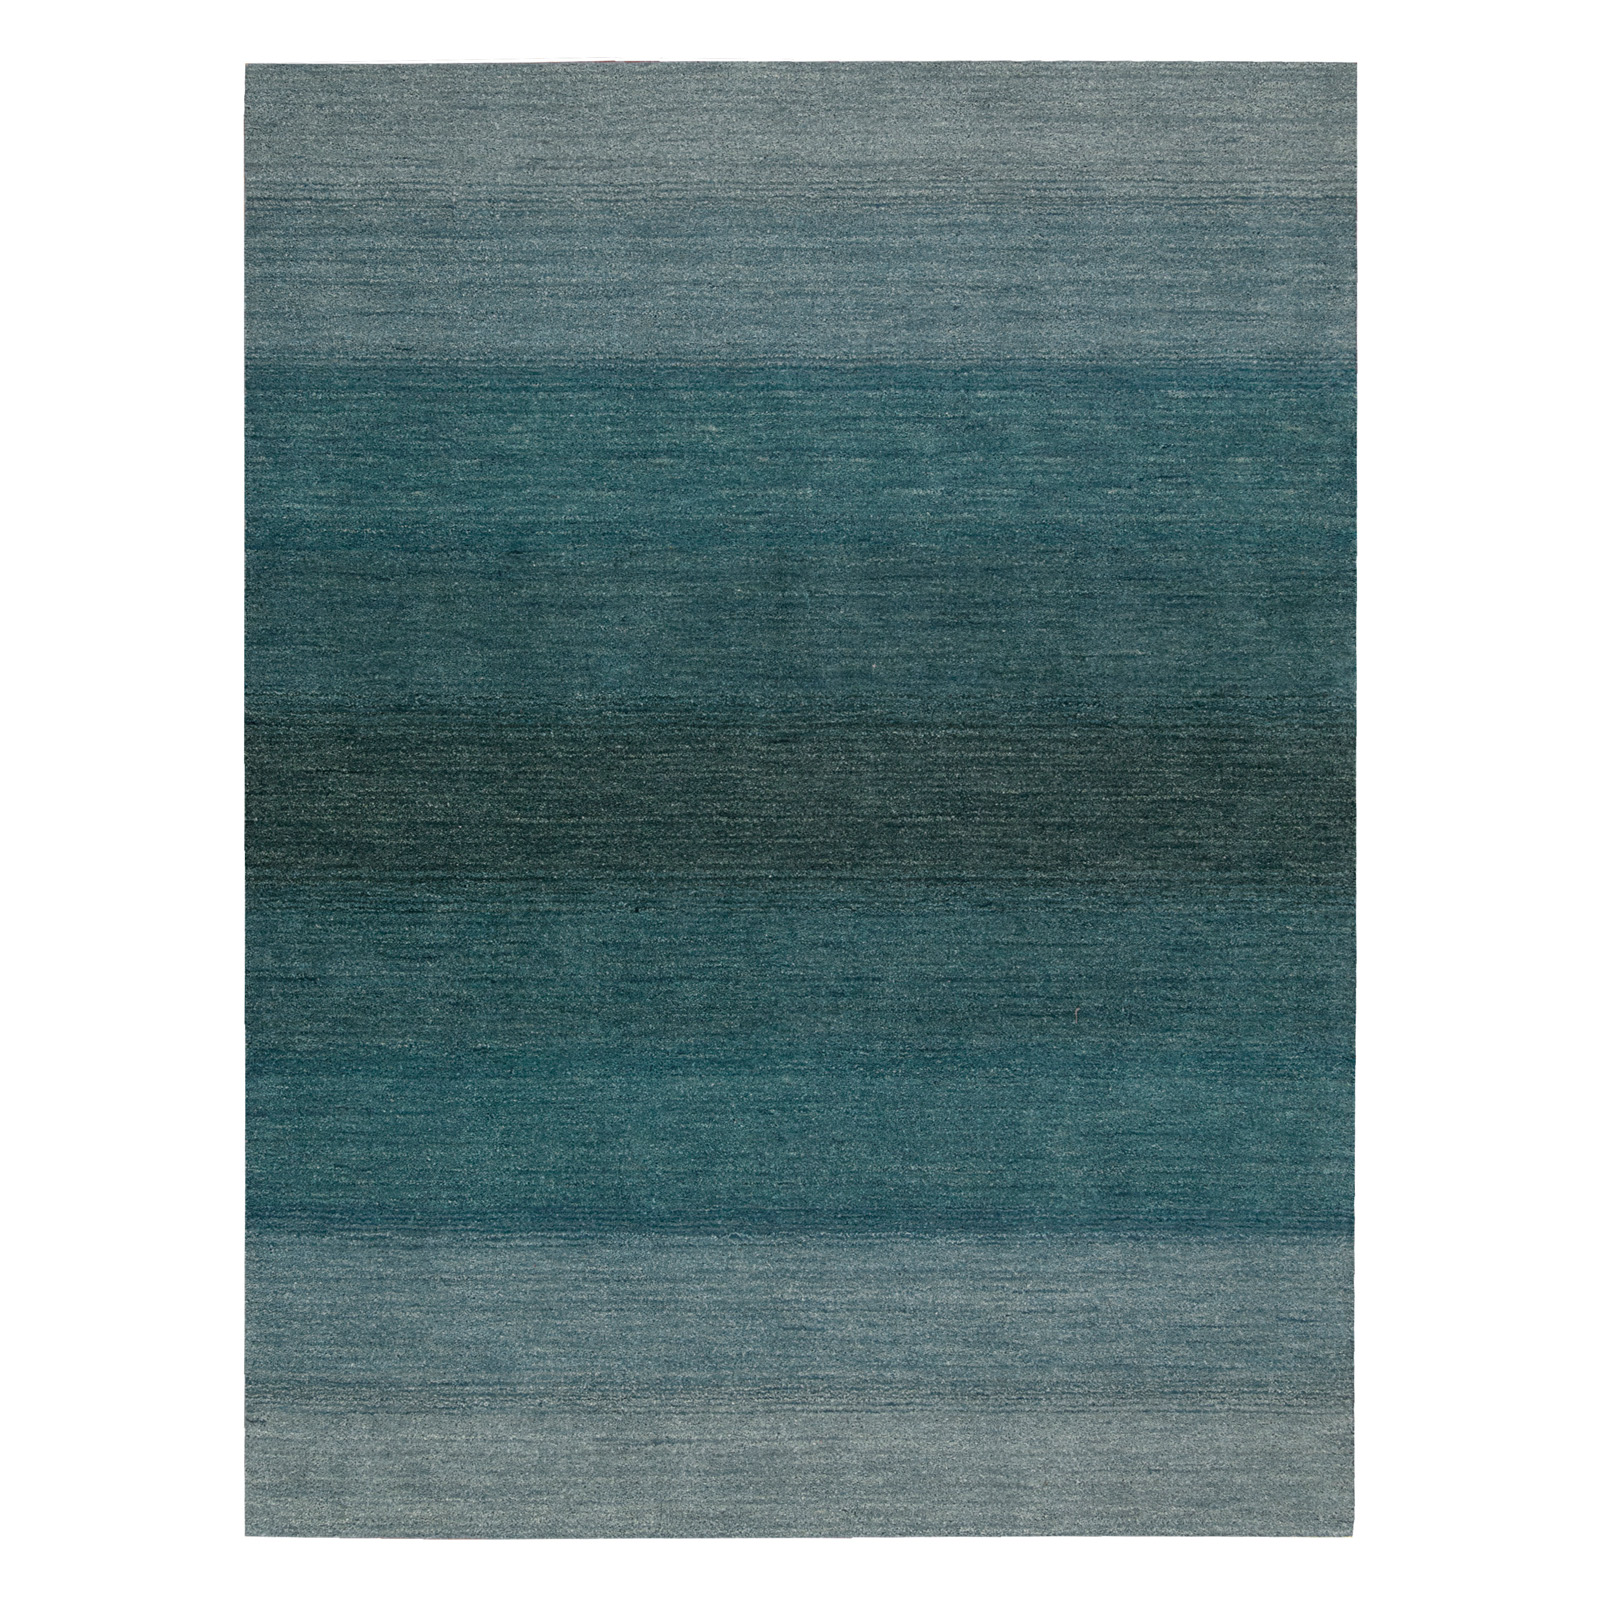 Calvin Klein Ck206 Glow Watercolor Area Rug Area Rugs At